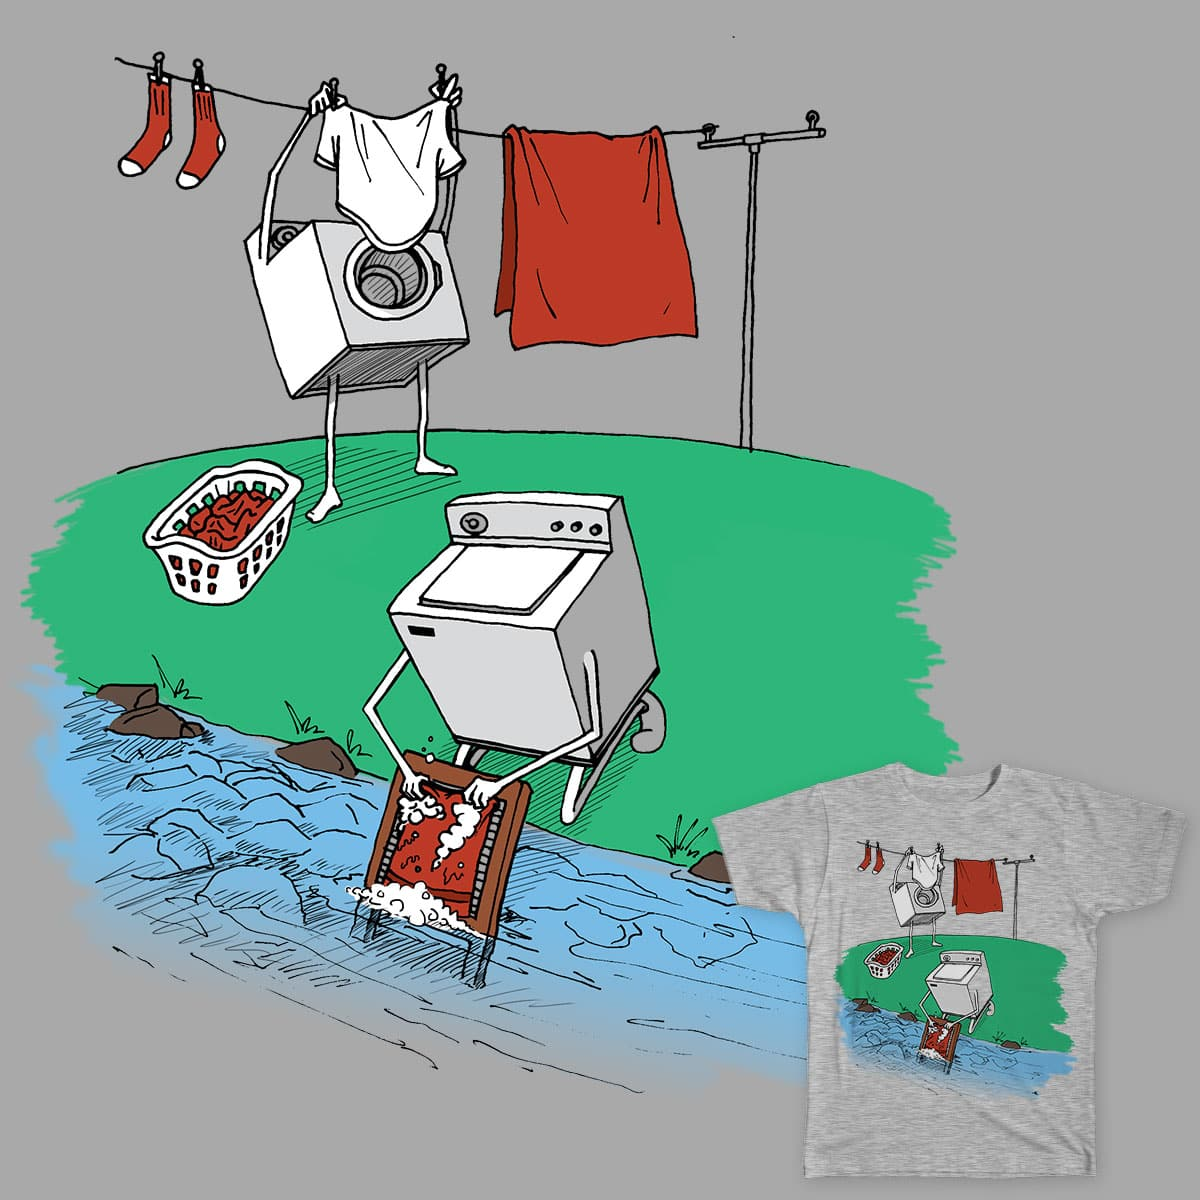 Laundry Day by nganci on Threadless